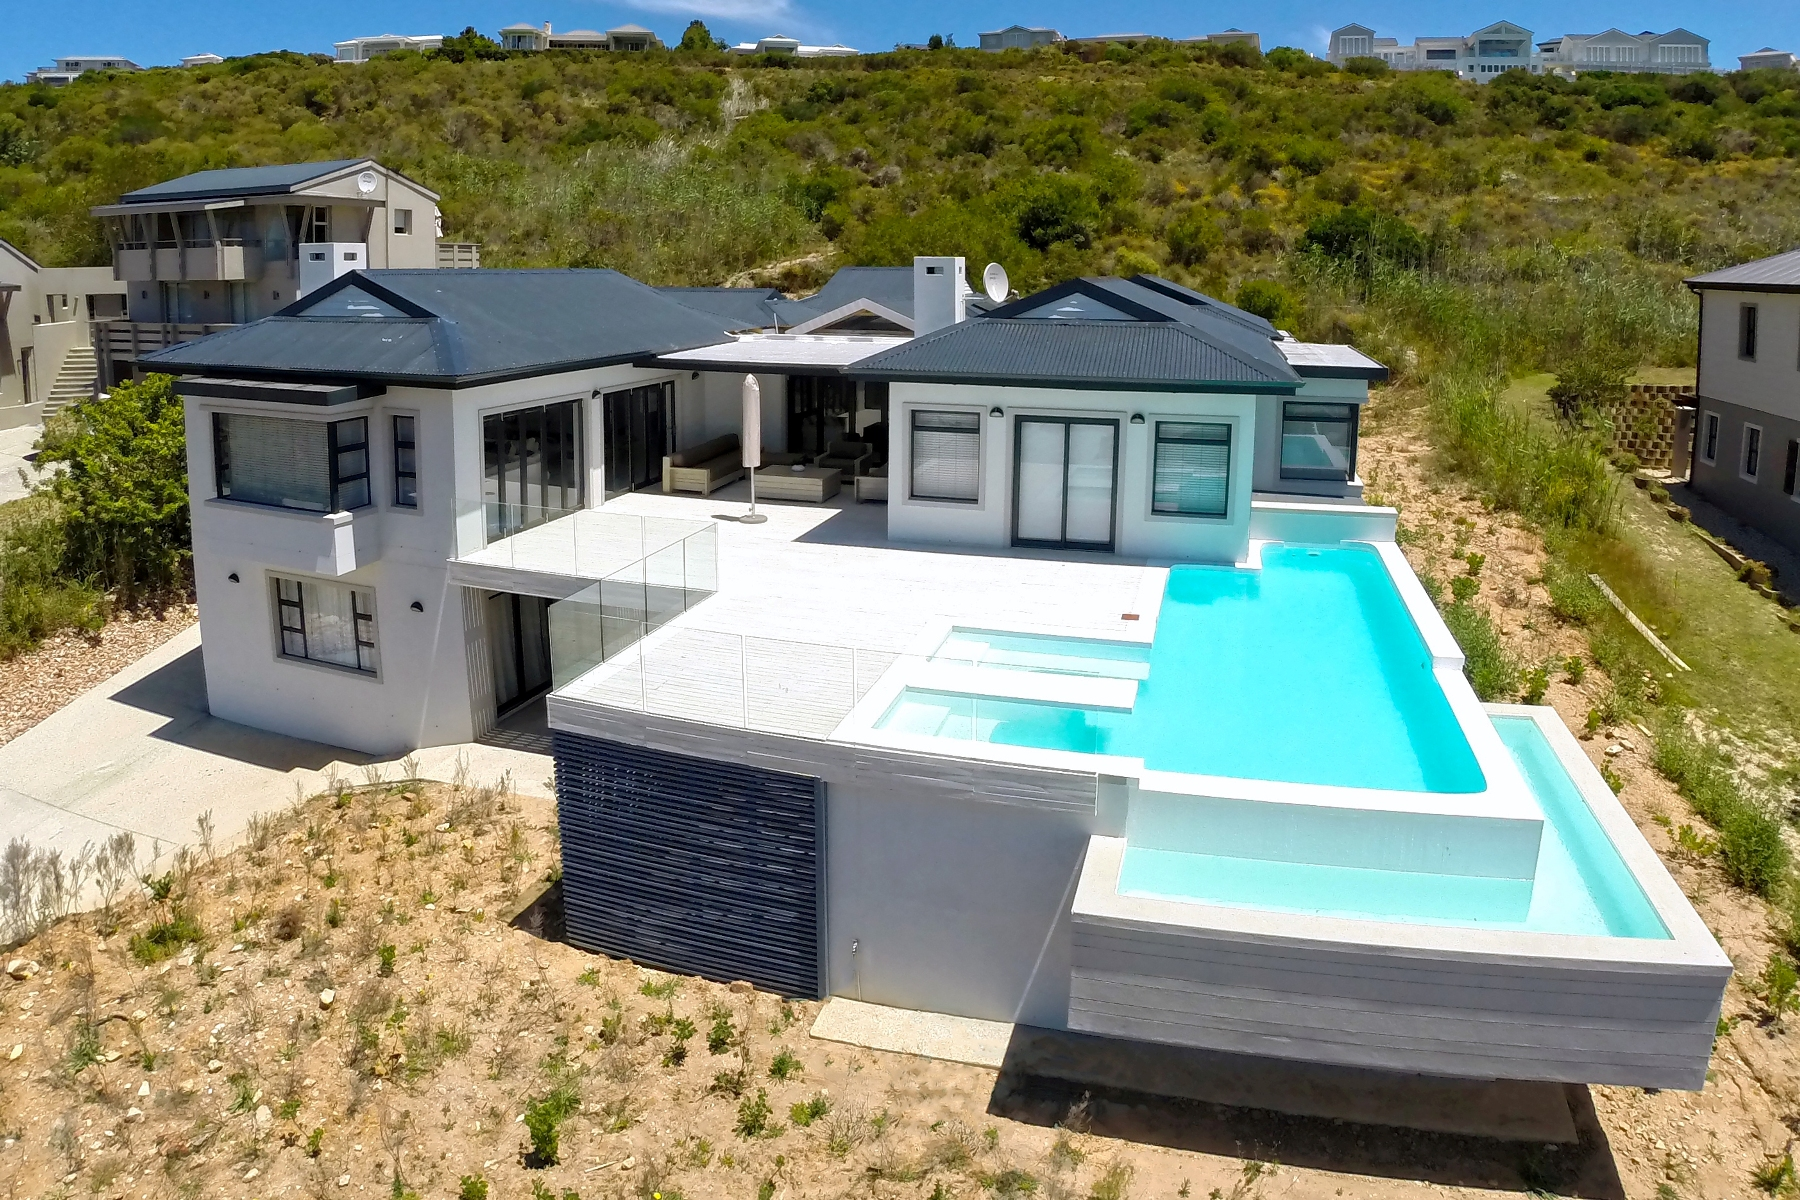 獨棟家庭住宅 為 出售 在 New Brackenridge Home Plettenberg Bay, 西開普省, 6600 南非